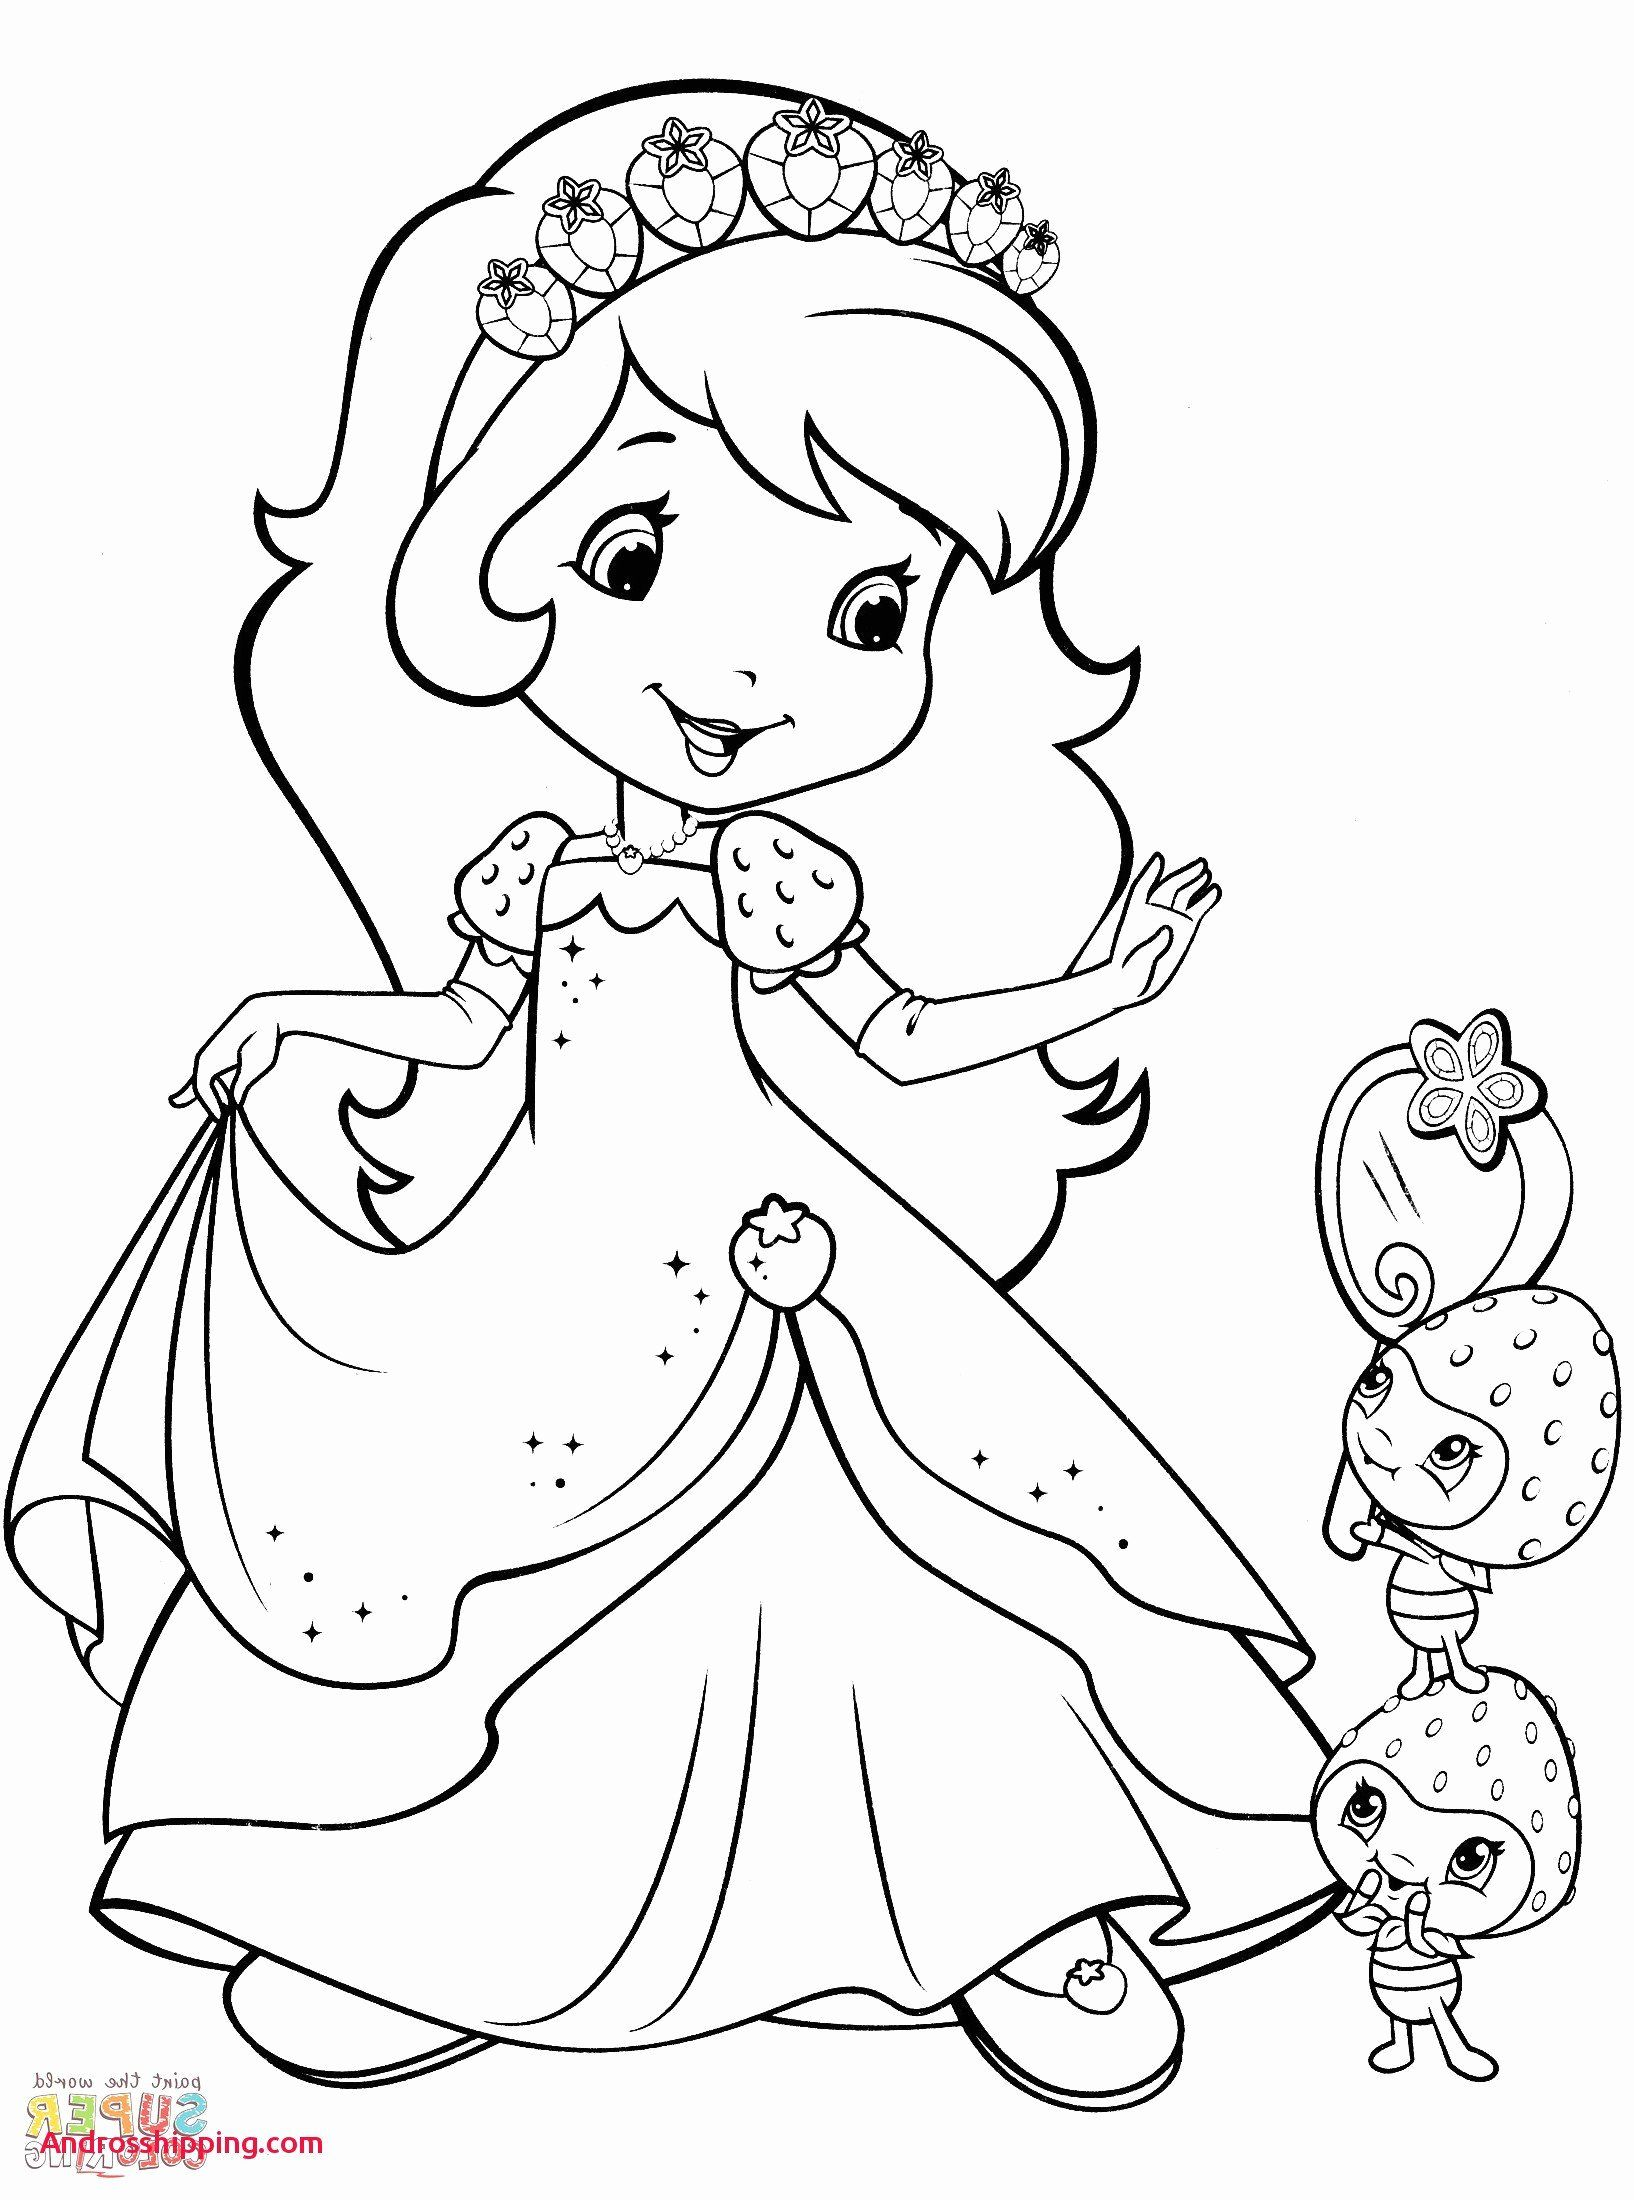 Color By Number Coloring Book Download Unique Coloring Pages Paw Patrol Lovely Barbie Coloring Pages Strawberry Shortcake Coloring Pages Cartoon Coloring Pages